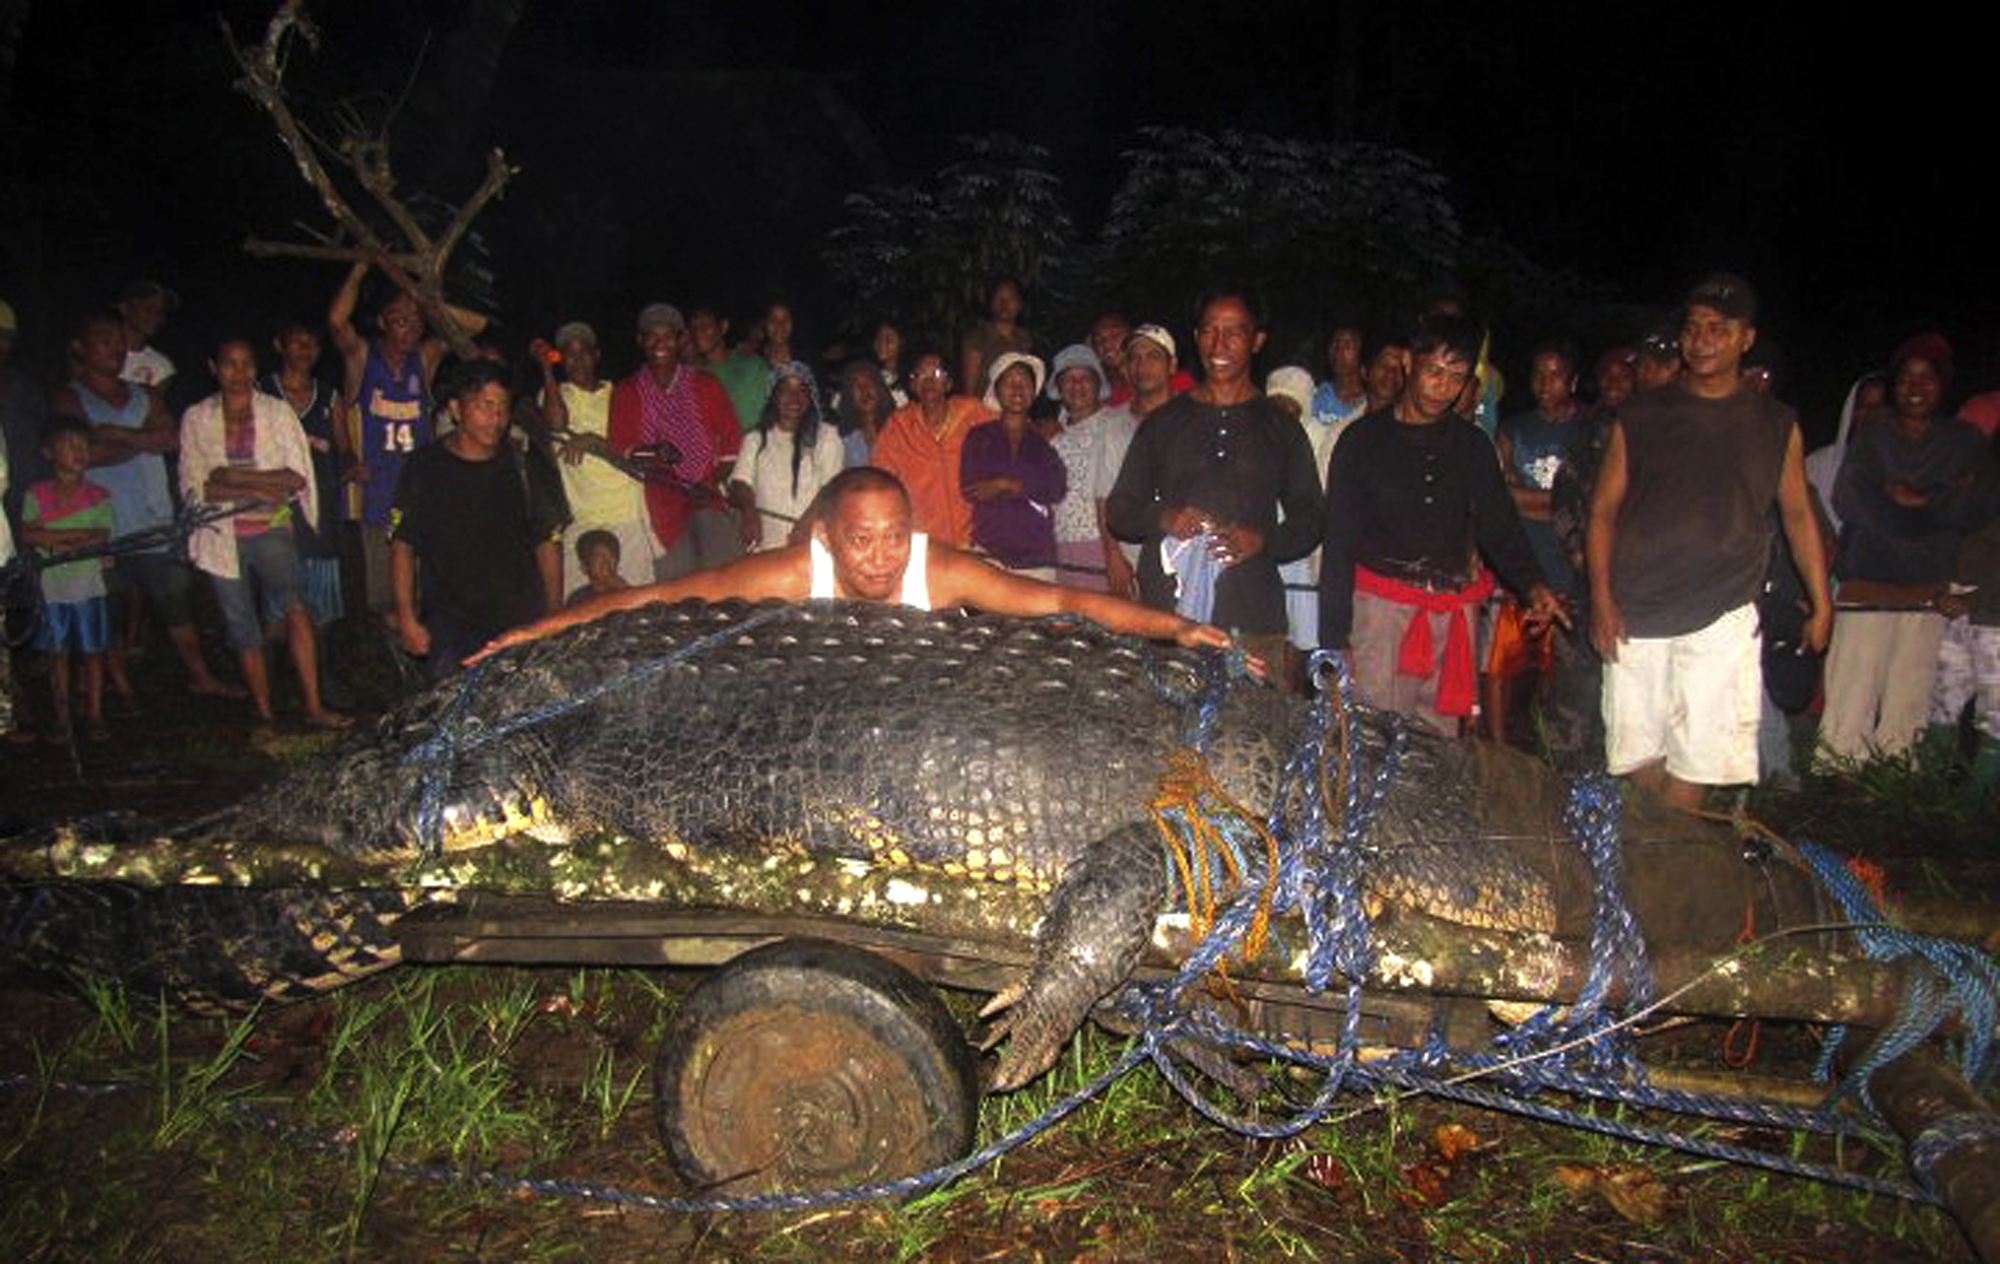 Real Monster: Giant Crocodile Captured in Philippines